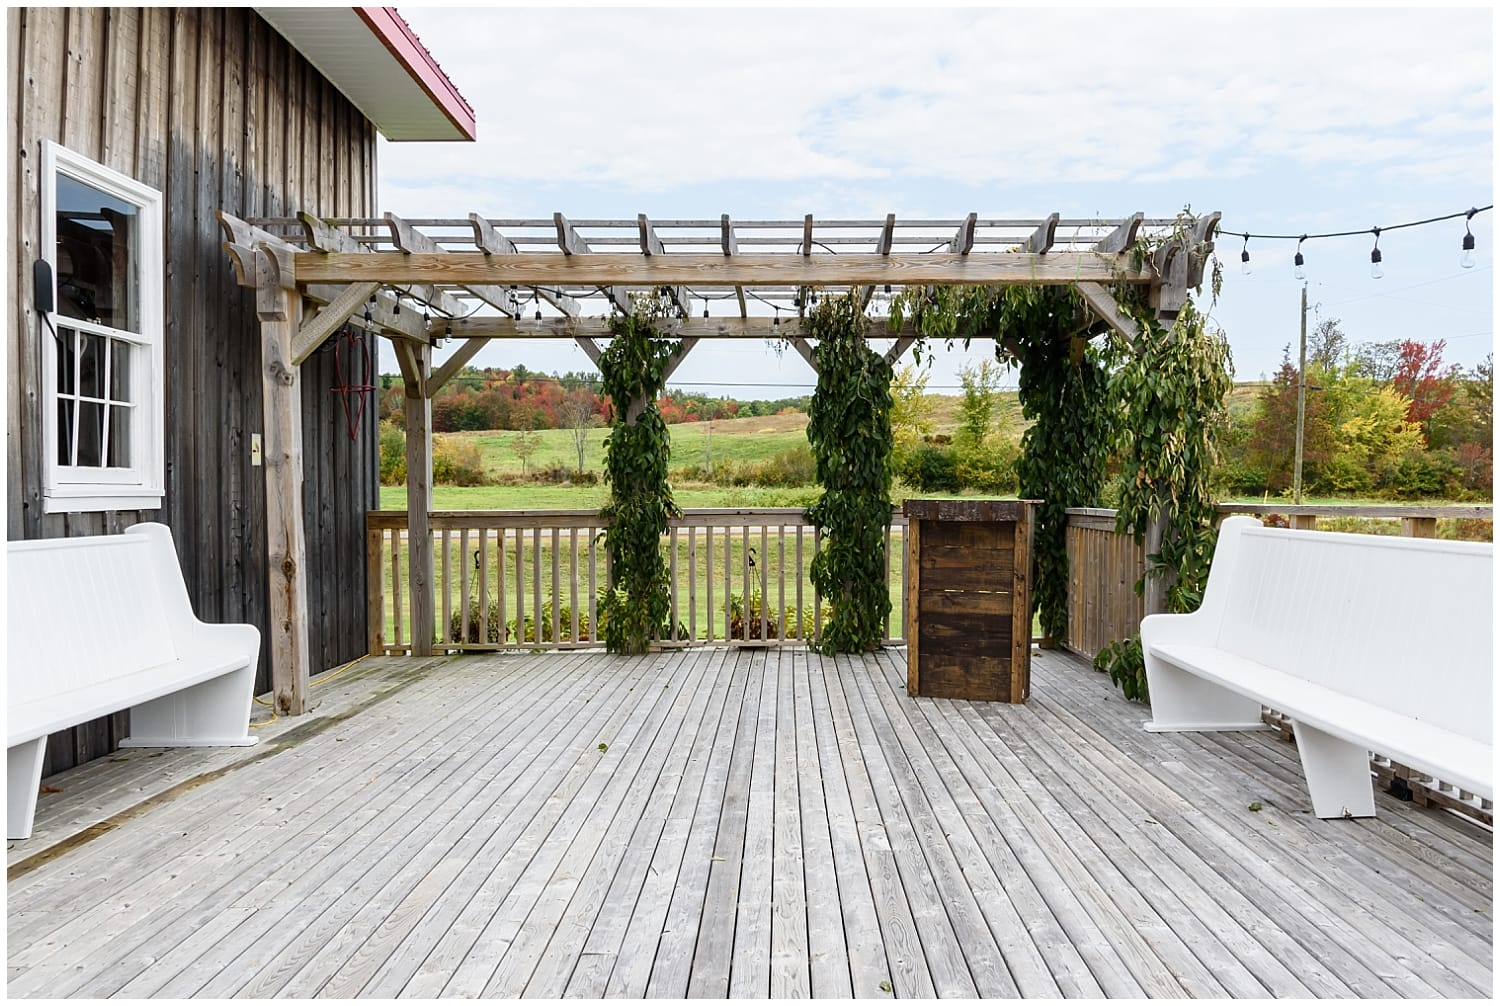 The balcony area for wedding speeches at the Barn at Sadie Belle Farm in Hantsport, NS.